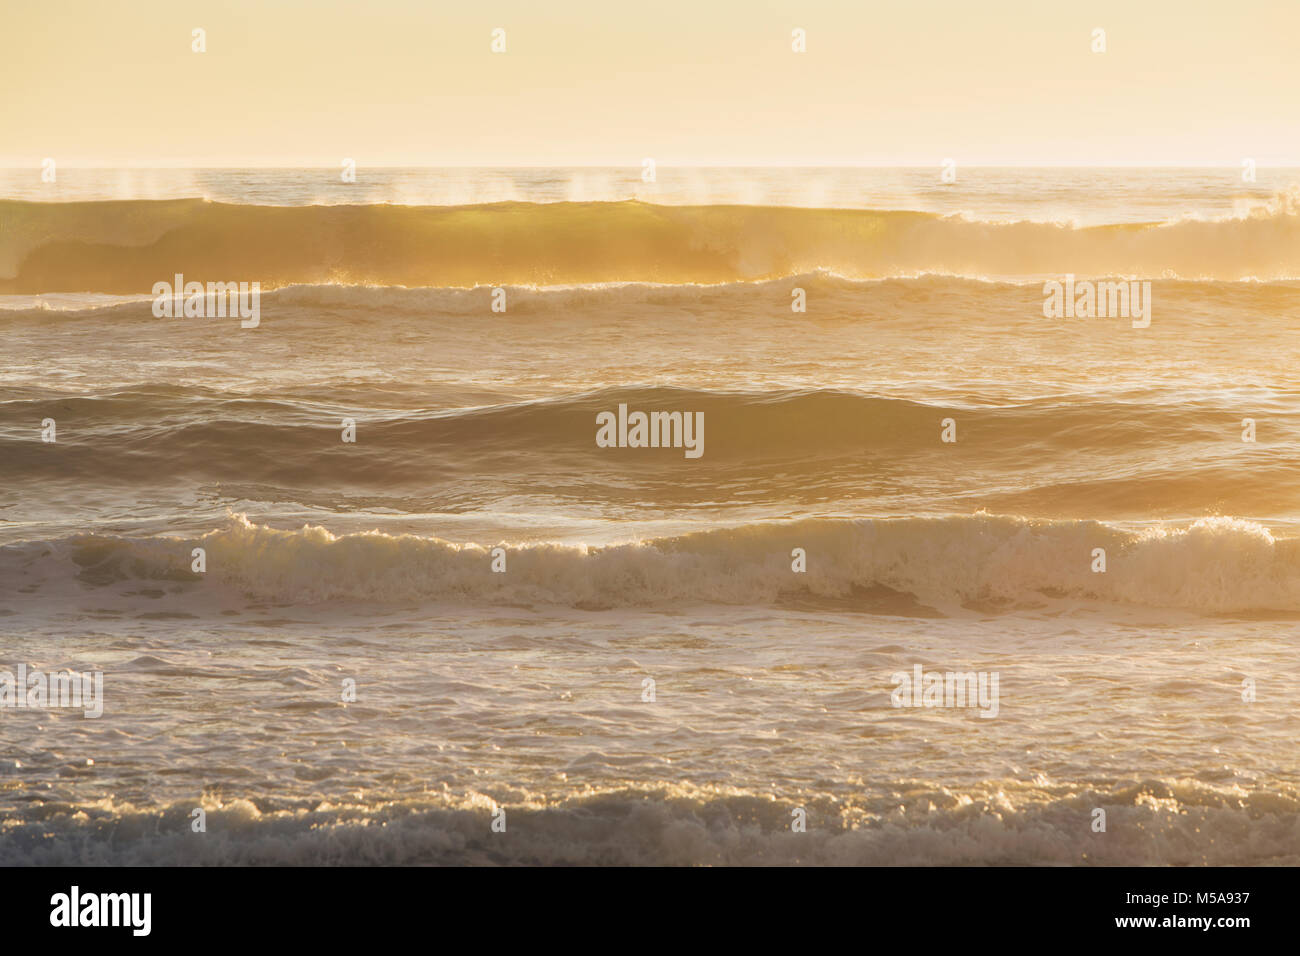 Seascape with breaking waves under cloudy sky at sunset. - Stock Image